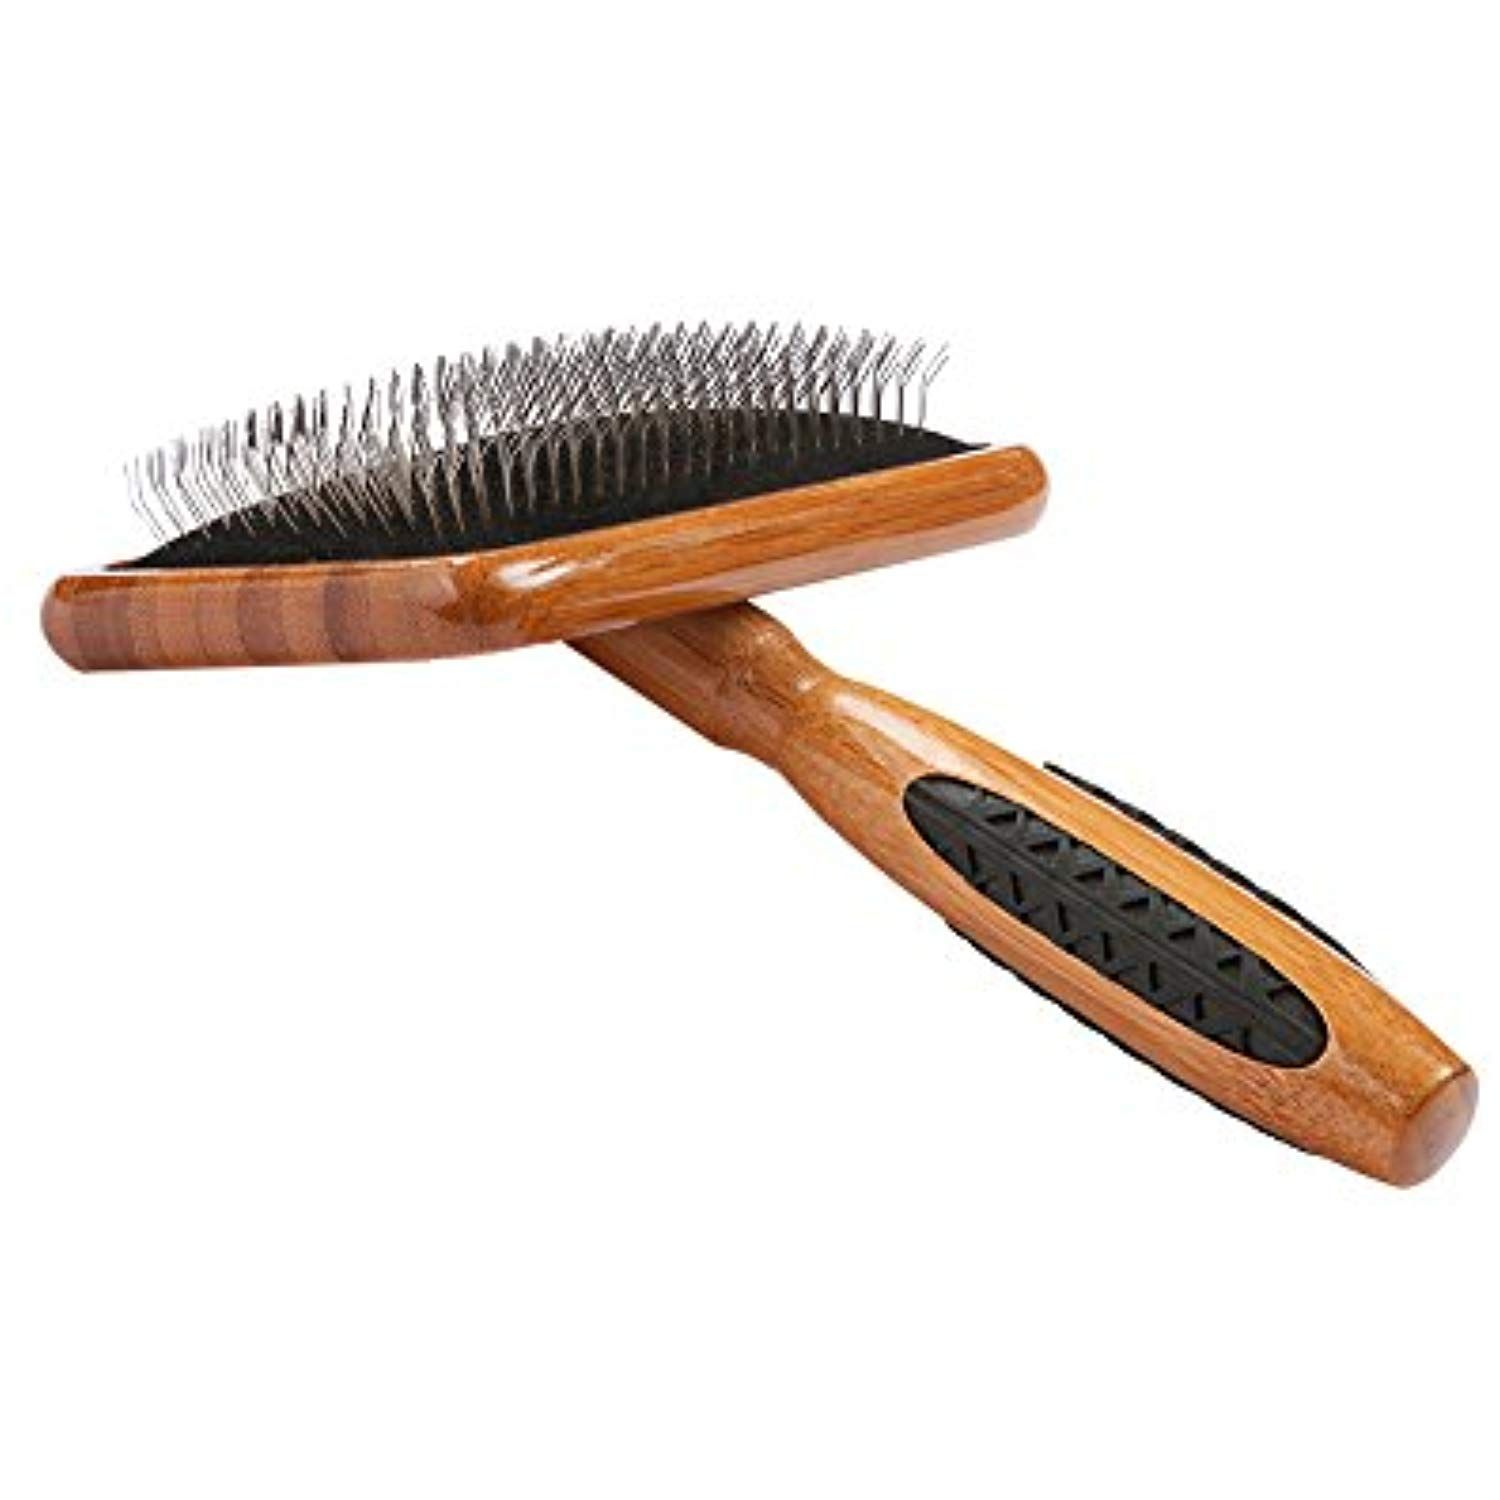 Bass Brushes Large Slicker Style Pet Brush With Bamboo Wood Handle And Rubber Grips Click On The Image For Additional Details Pet Brush Wood Handle Pets